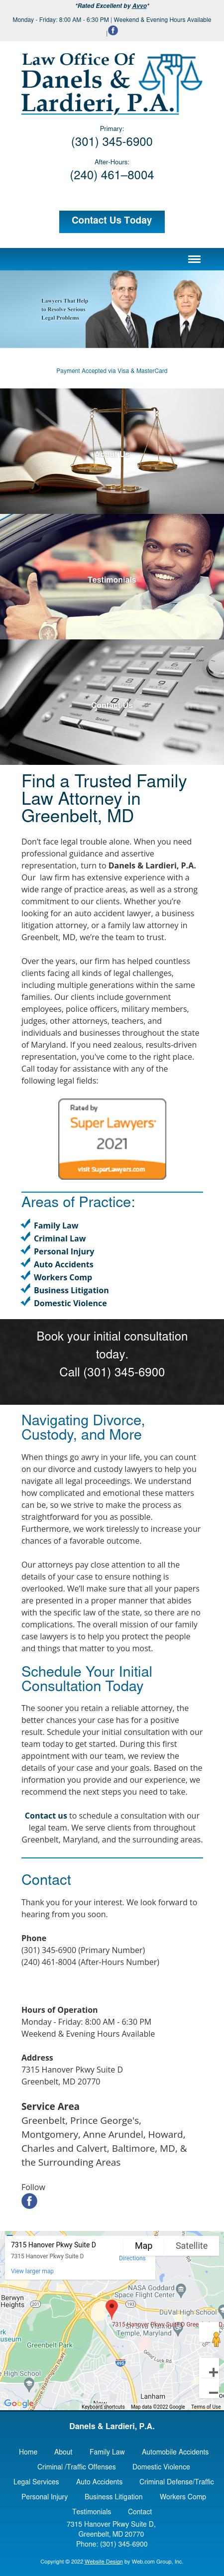 Law Offices of Danels & Lardieri, P.A. - Greenbelt MD Lawyers